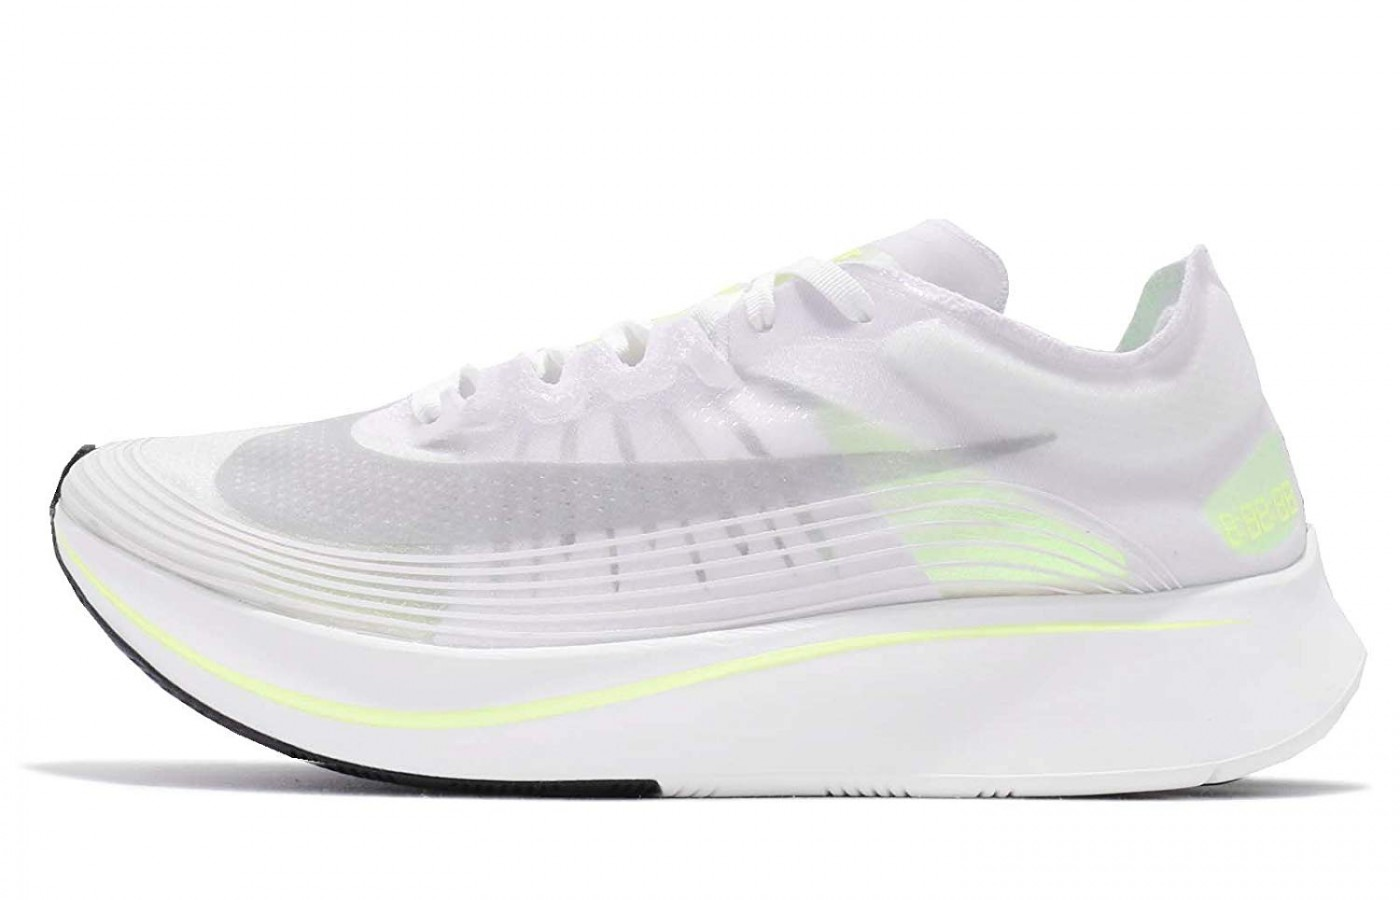 ba3448b301e6 Nike Zoom Fly SP Reviewed for Performance in 2019